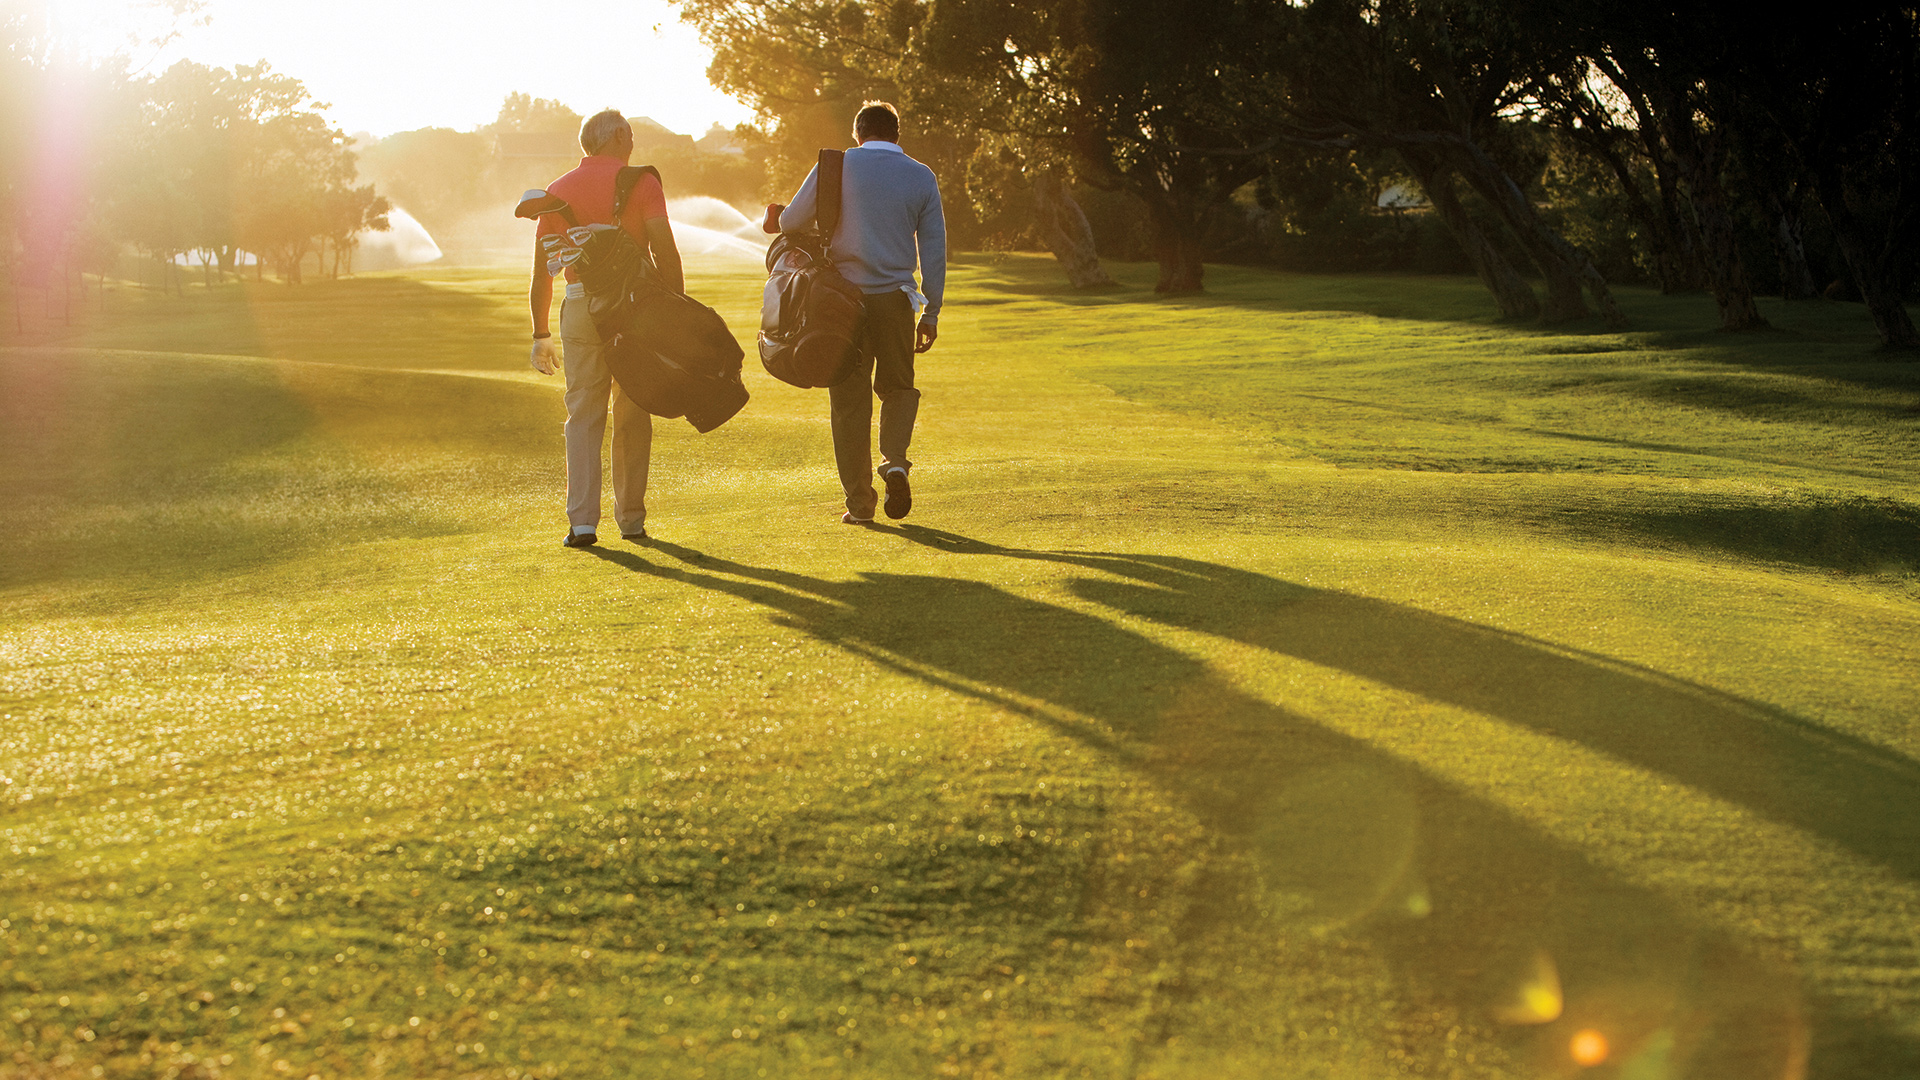 Play a round at the world-class Ramsey Golf and Country Club nearby